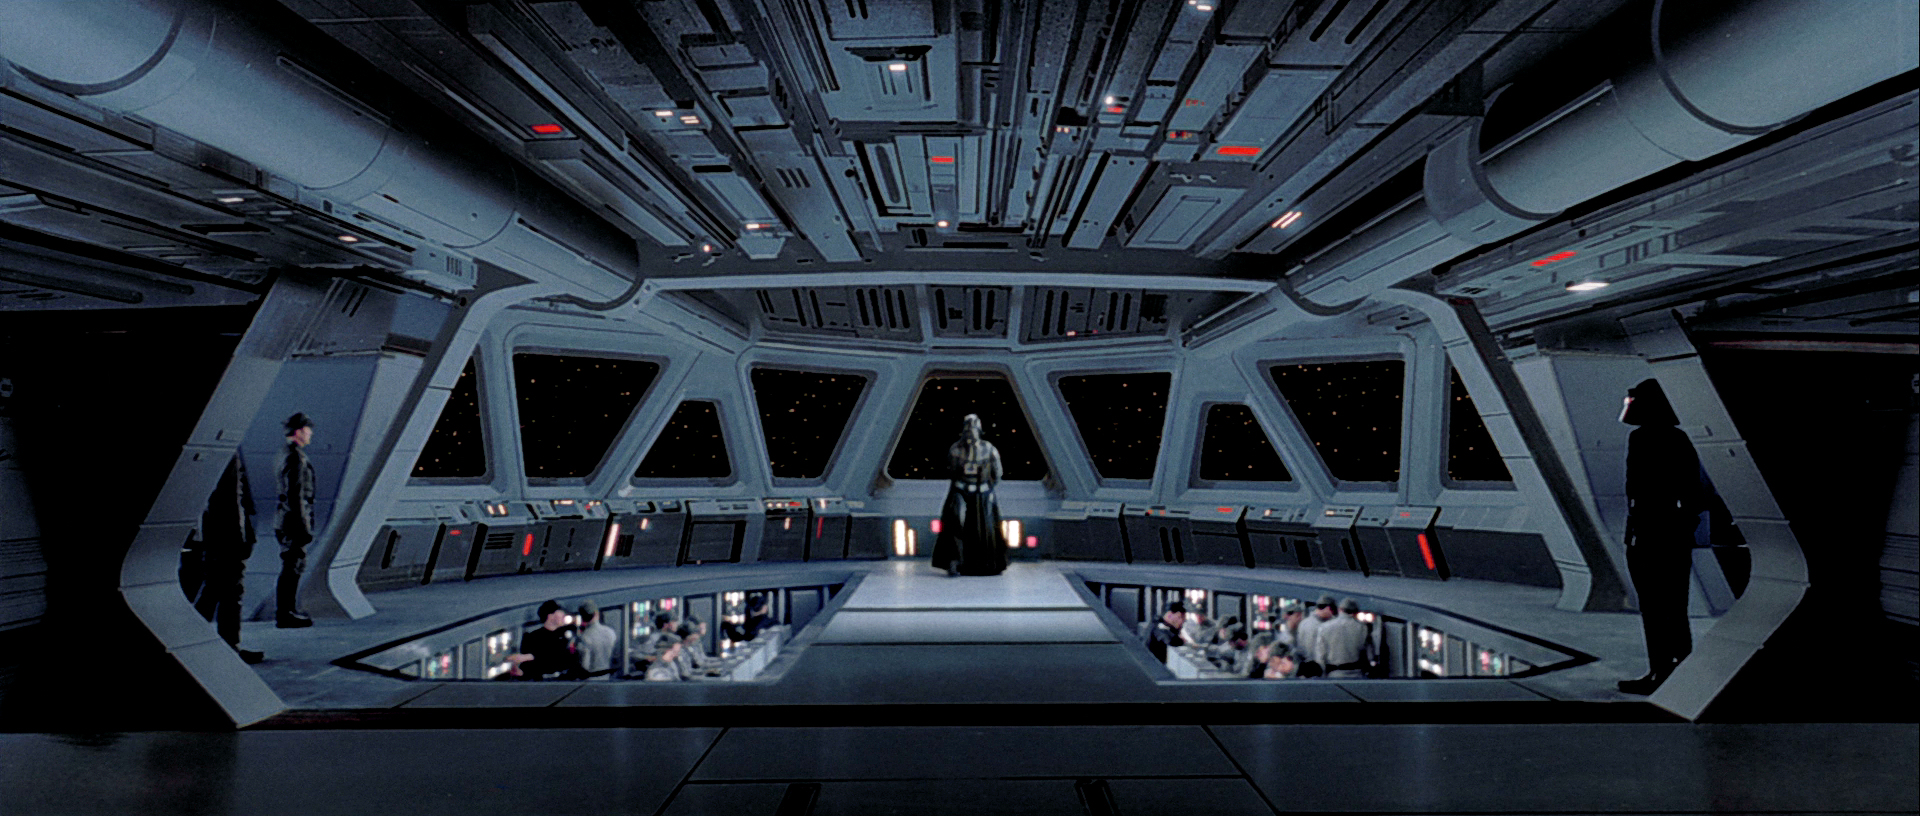 The Empire Strikes Back has some amazing cinematography ...